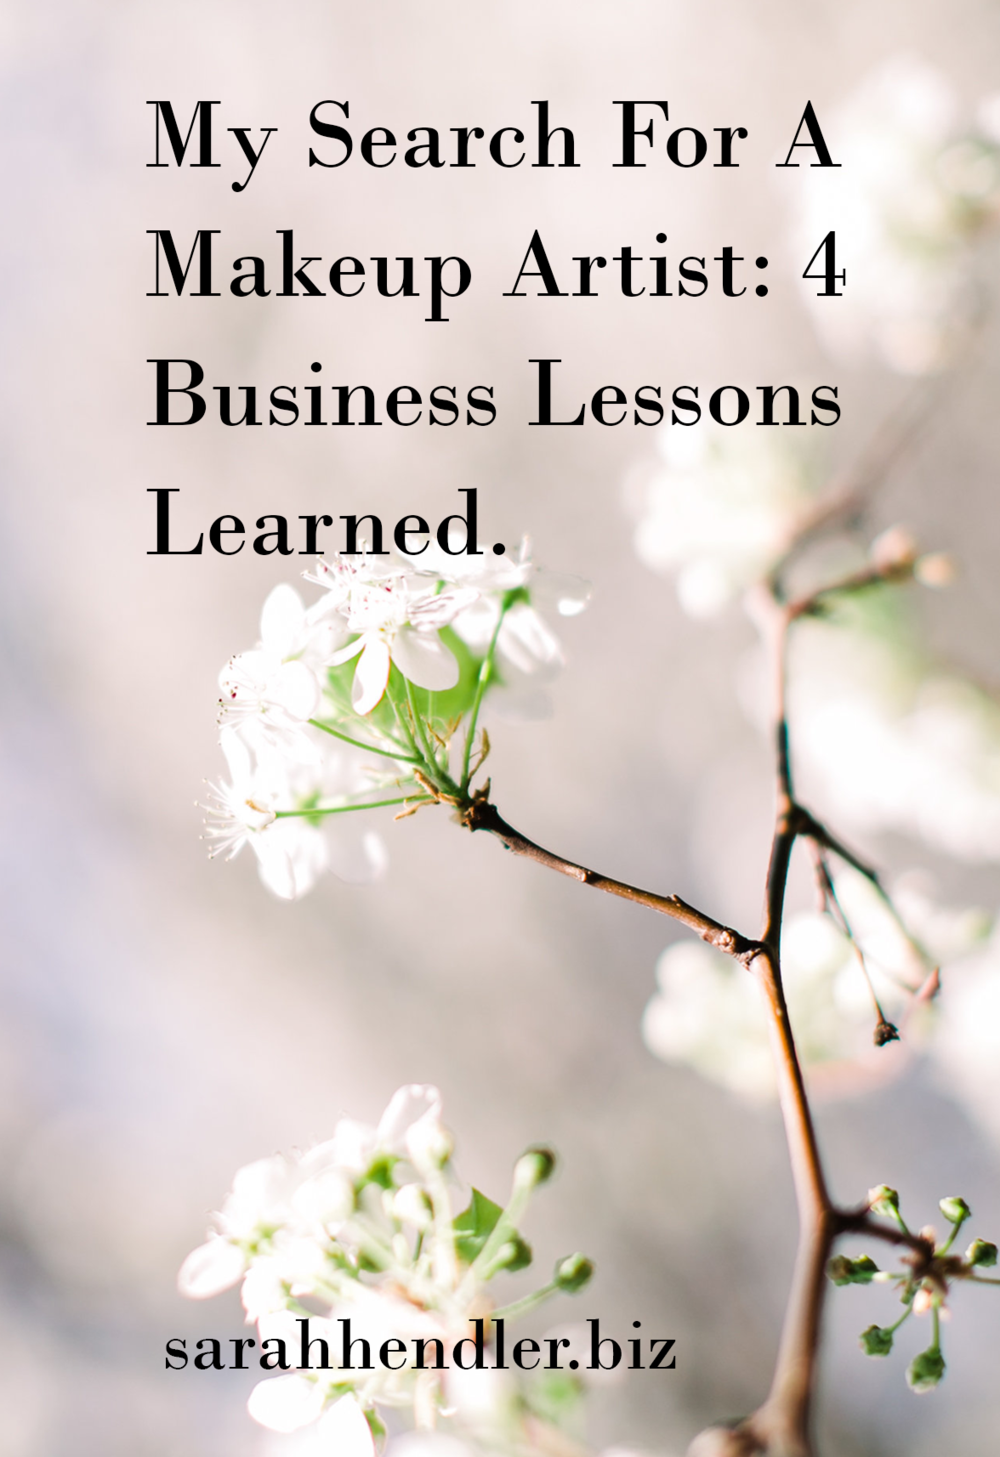 My Search For A Makeup Artist: 4 Business Lessons Learned.